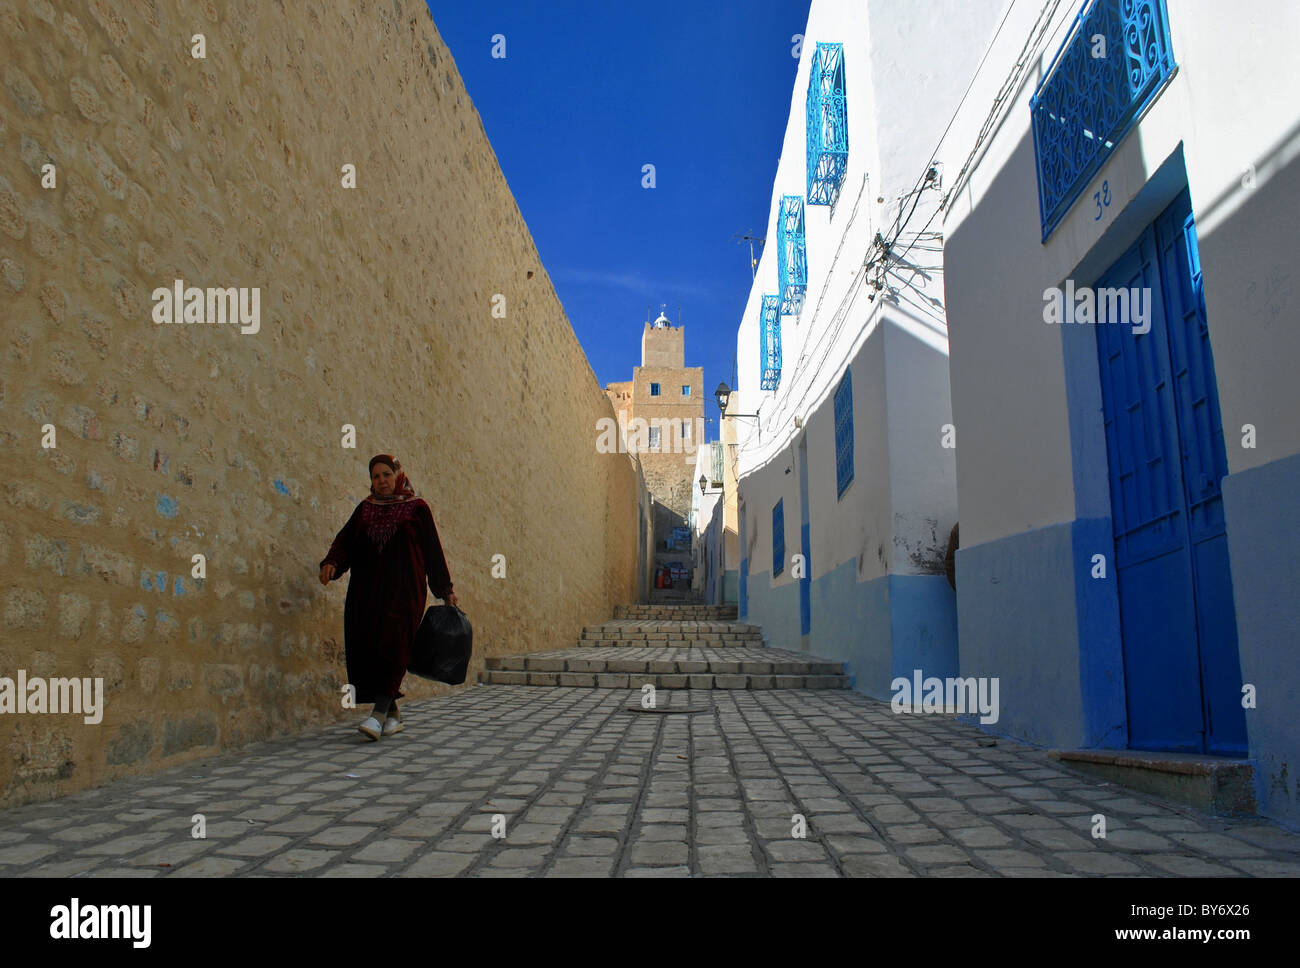 Woman walking down a street in Sousse medina, Tunisia Stock Photo